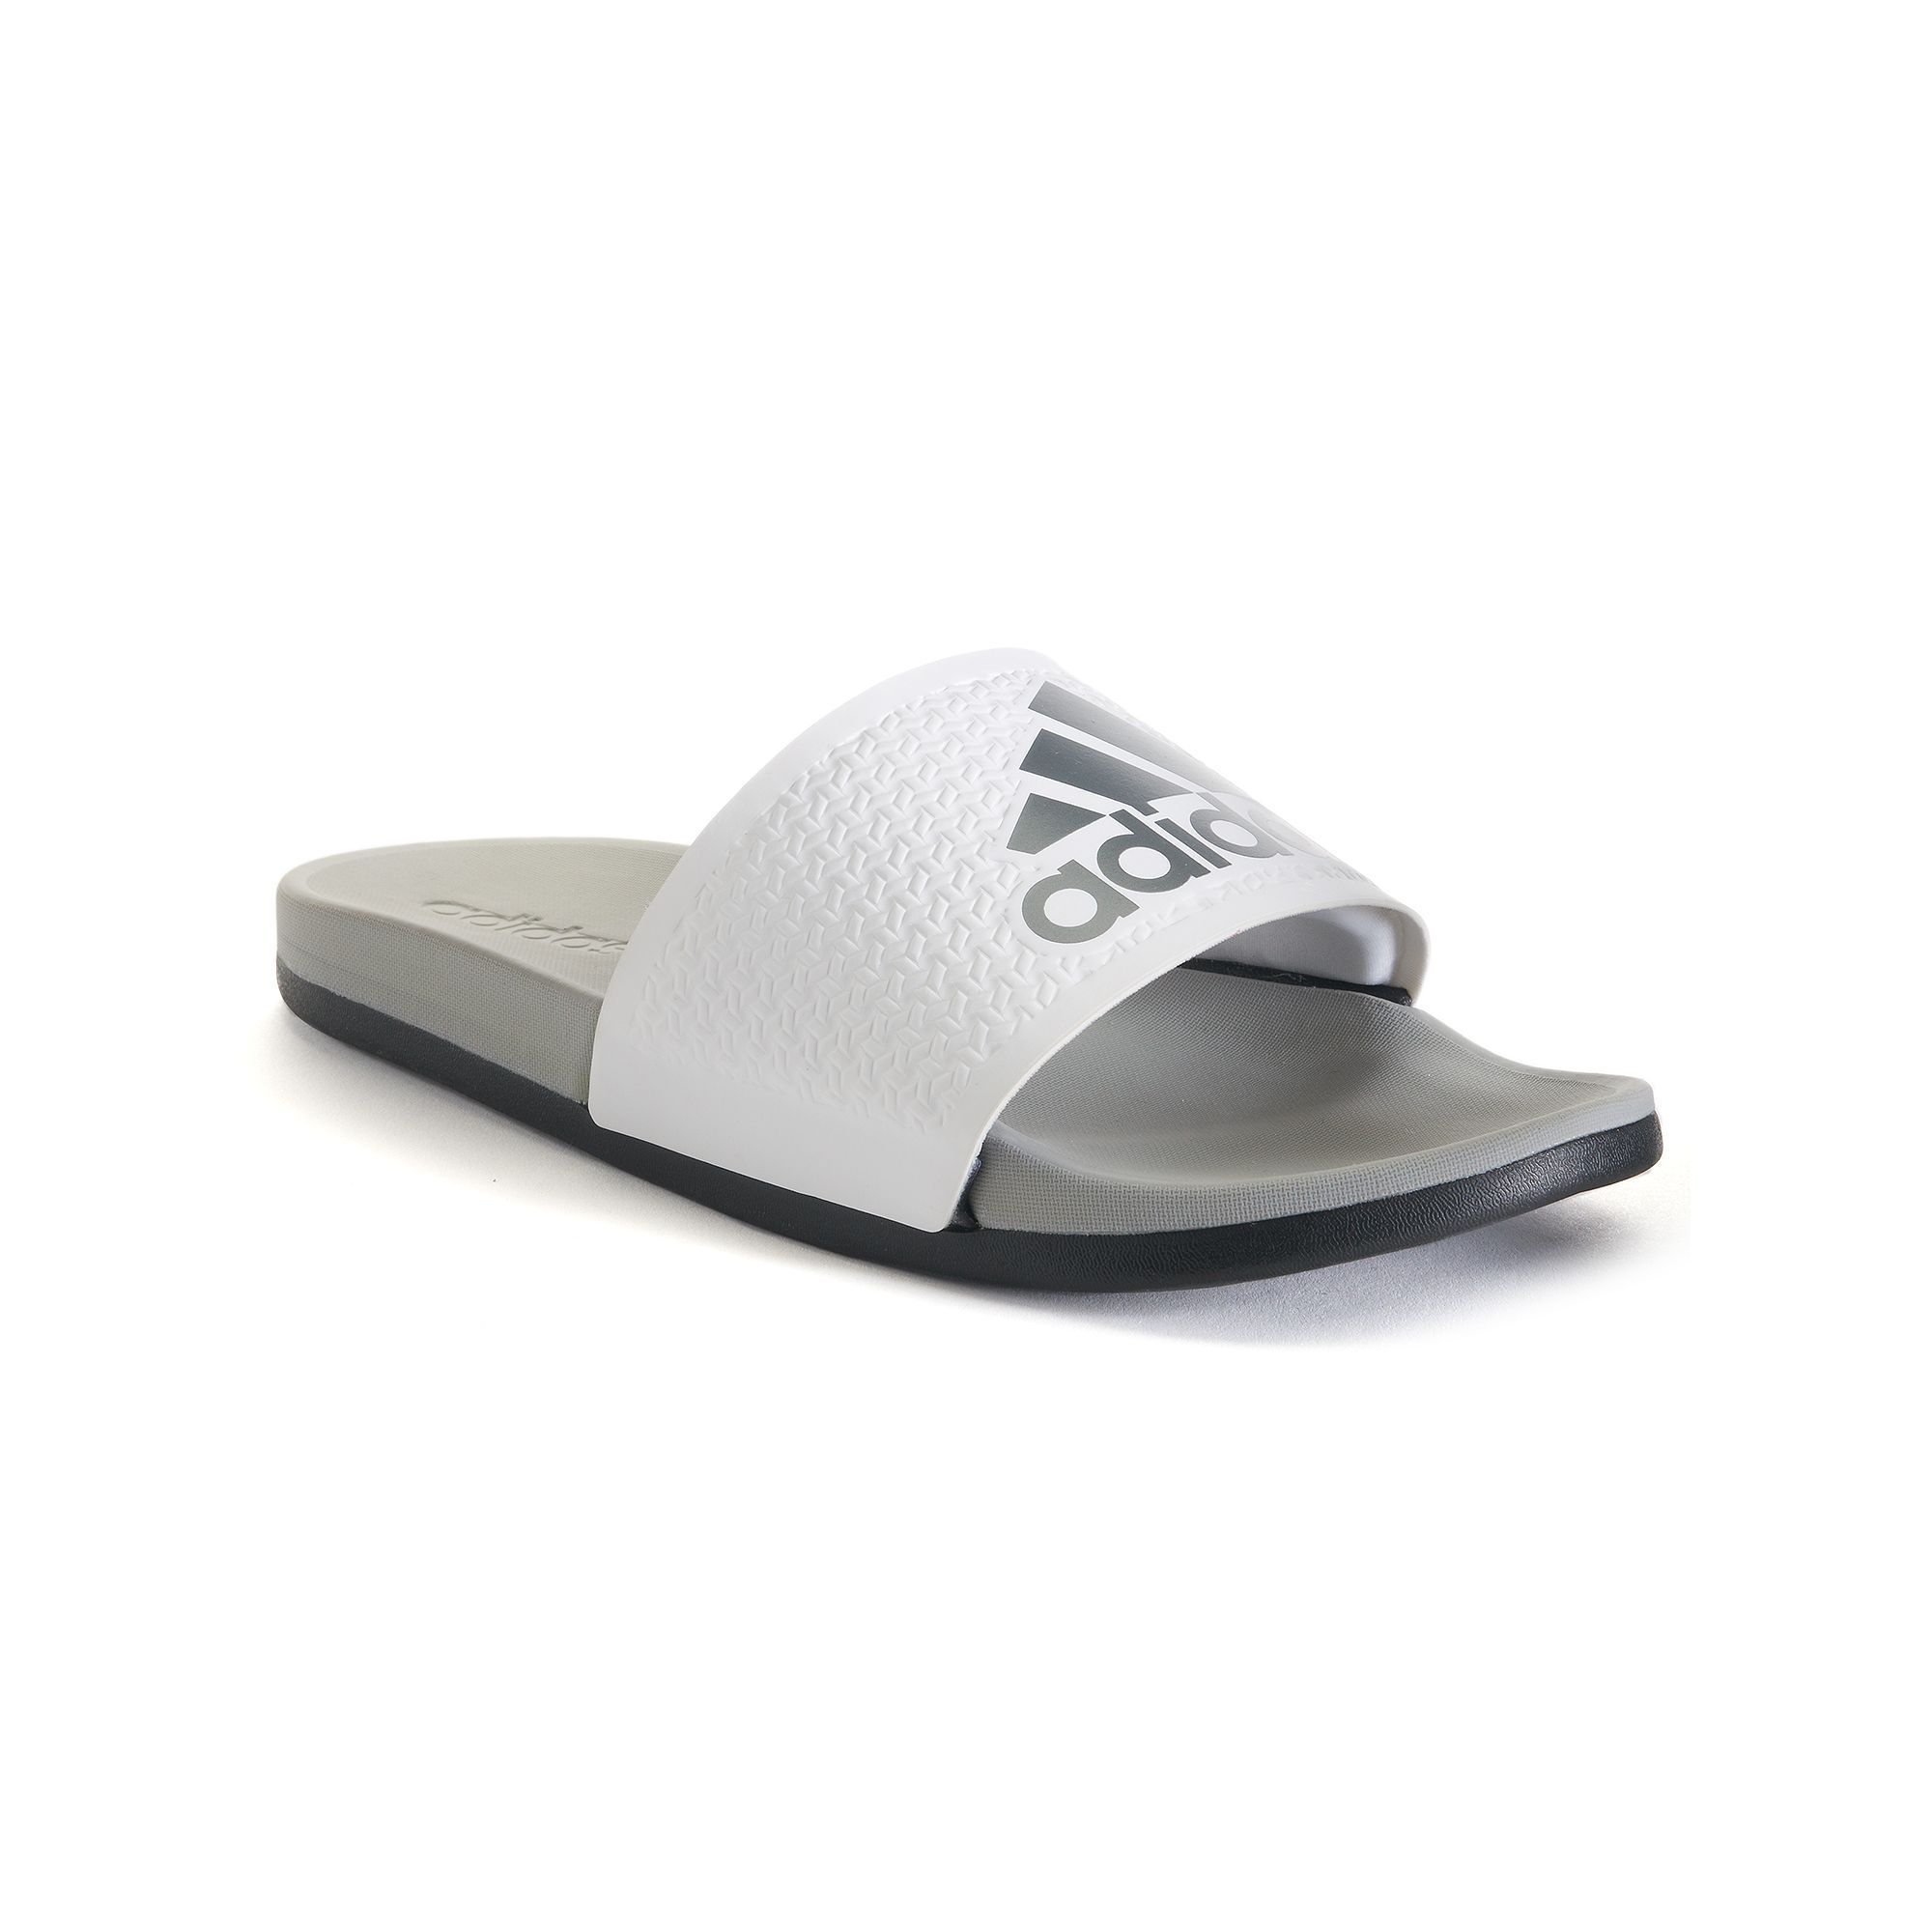 fcb192869e8 adidas Adilette Supercloud Plus Men s Slide Sandals